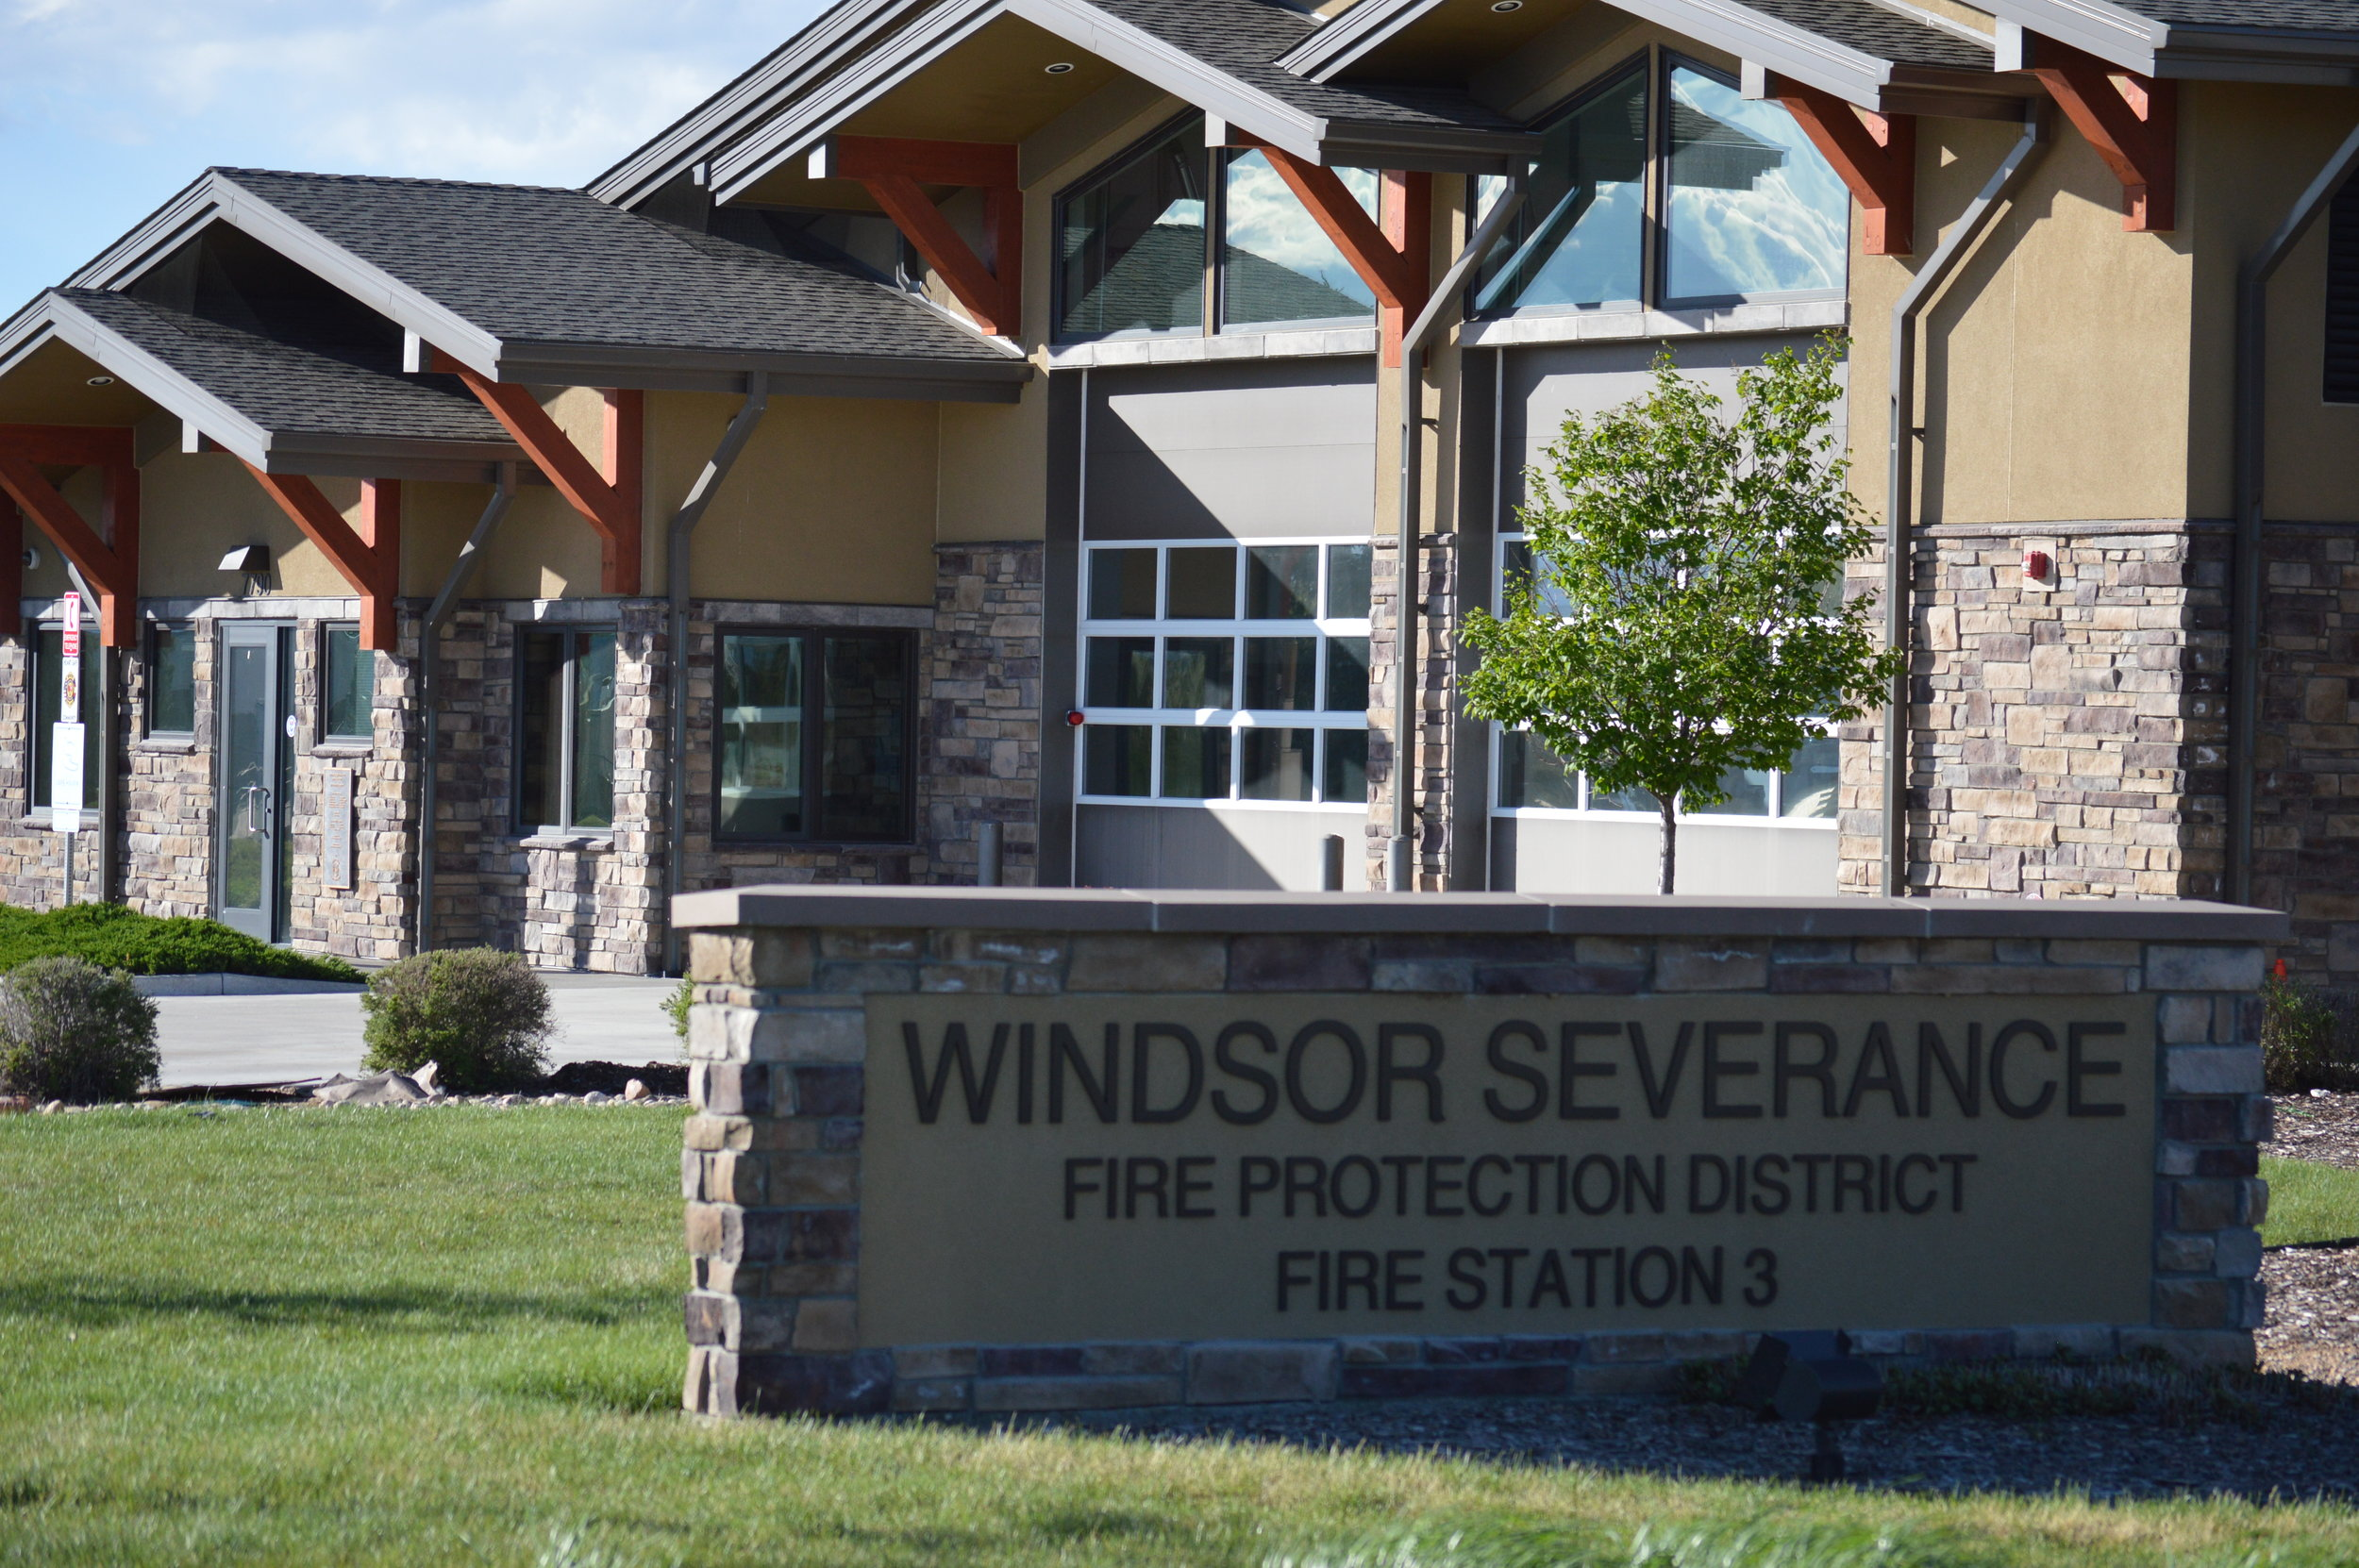 Windsor Severance Fire District serves parts of Larimer County